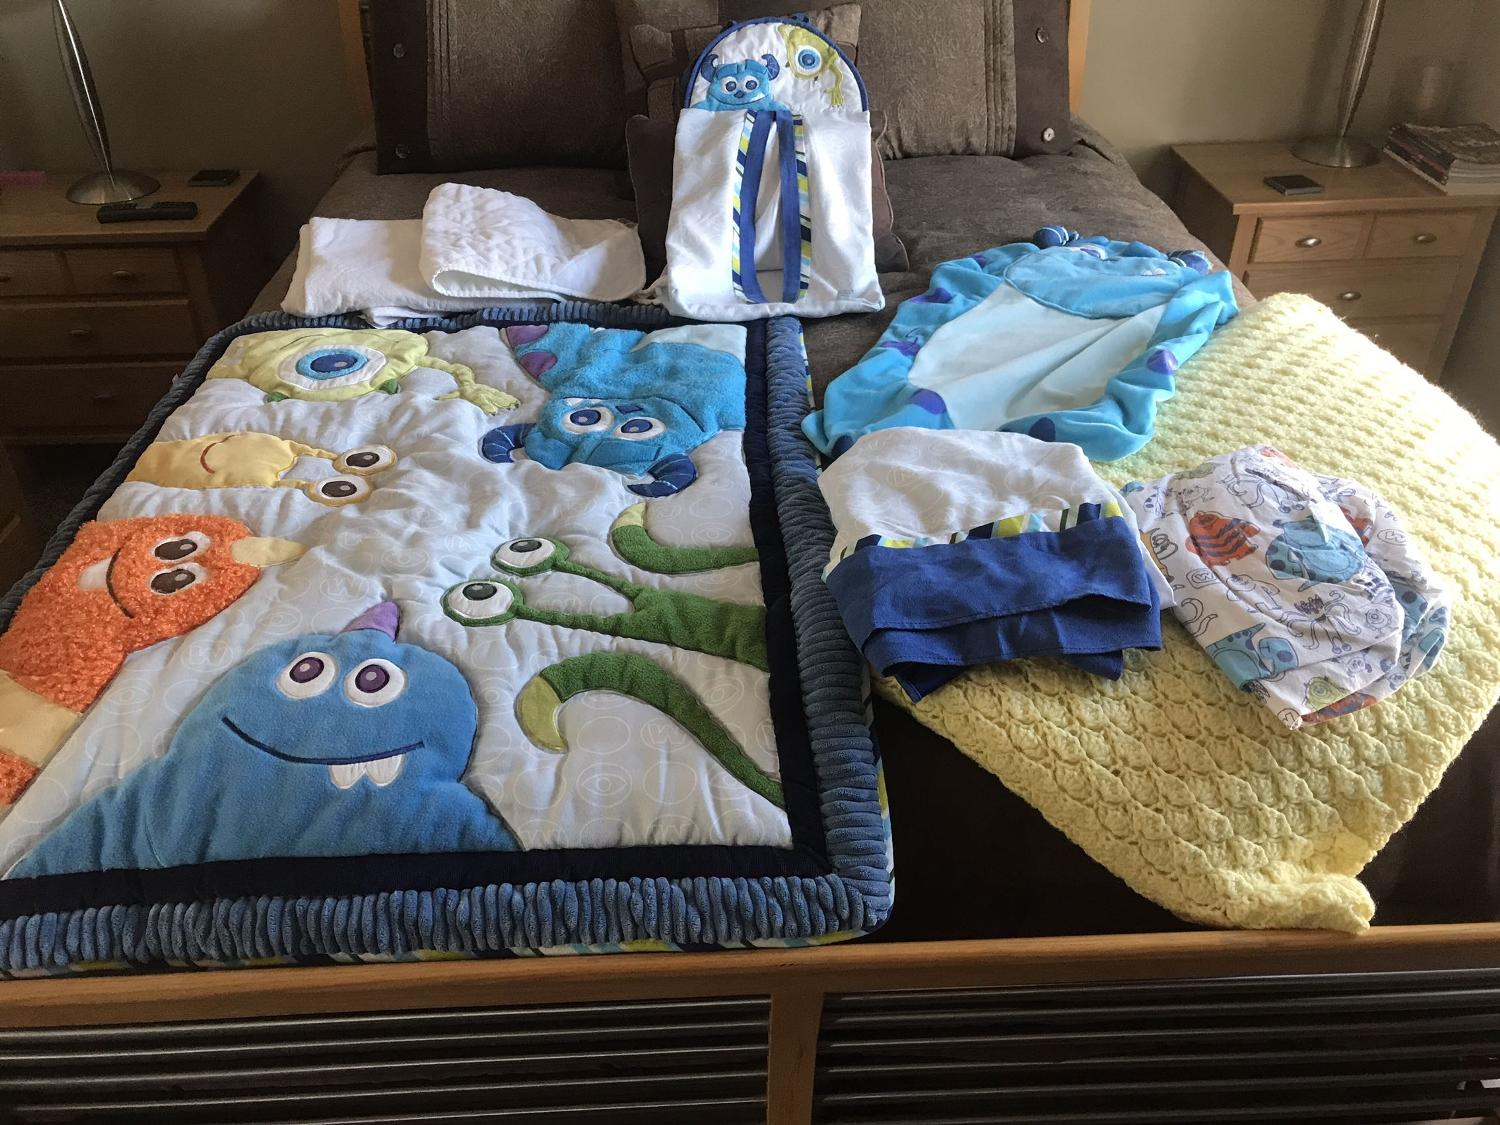 Monsters Inc 4 Piece Premier Crib Bedding Set: Find More Monsters Ink Crib Set For Sale At Up To 90% Off